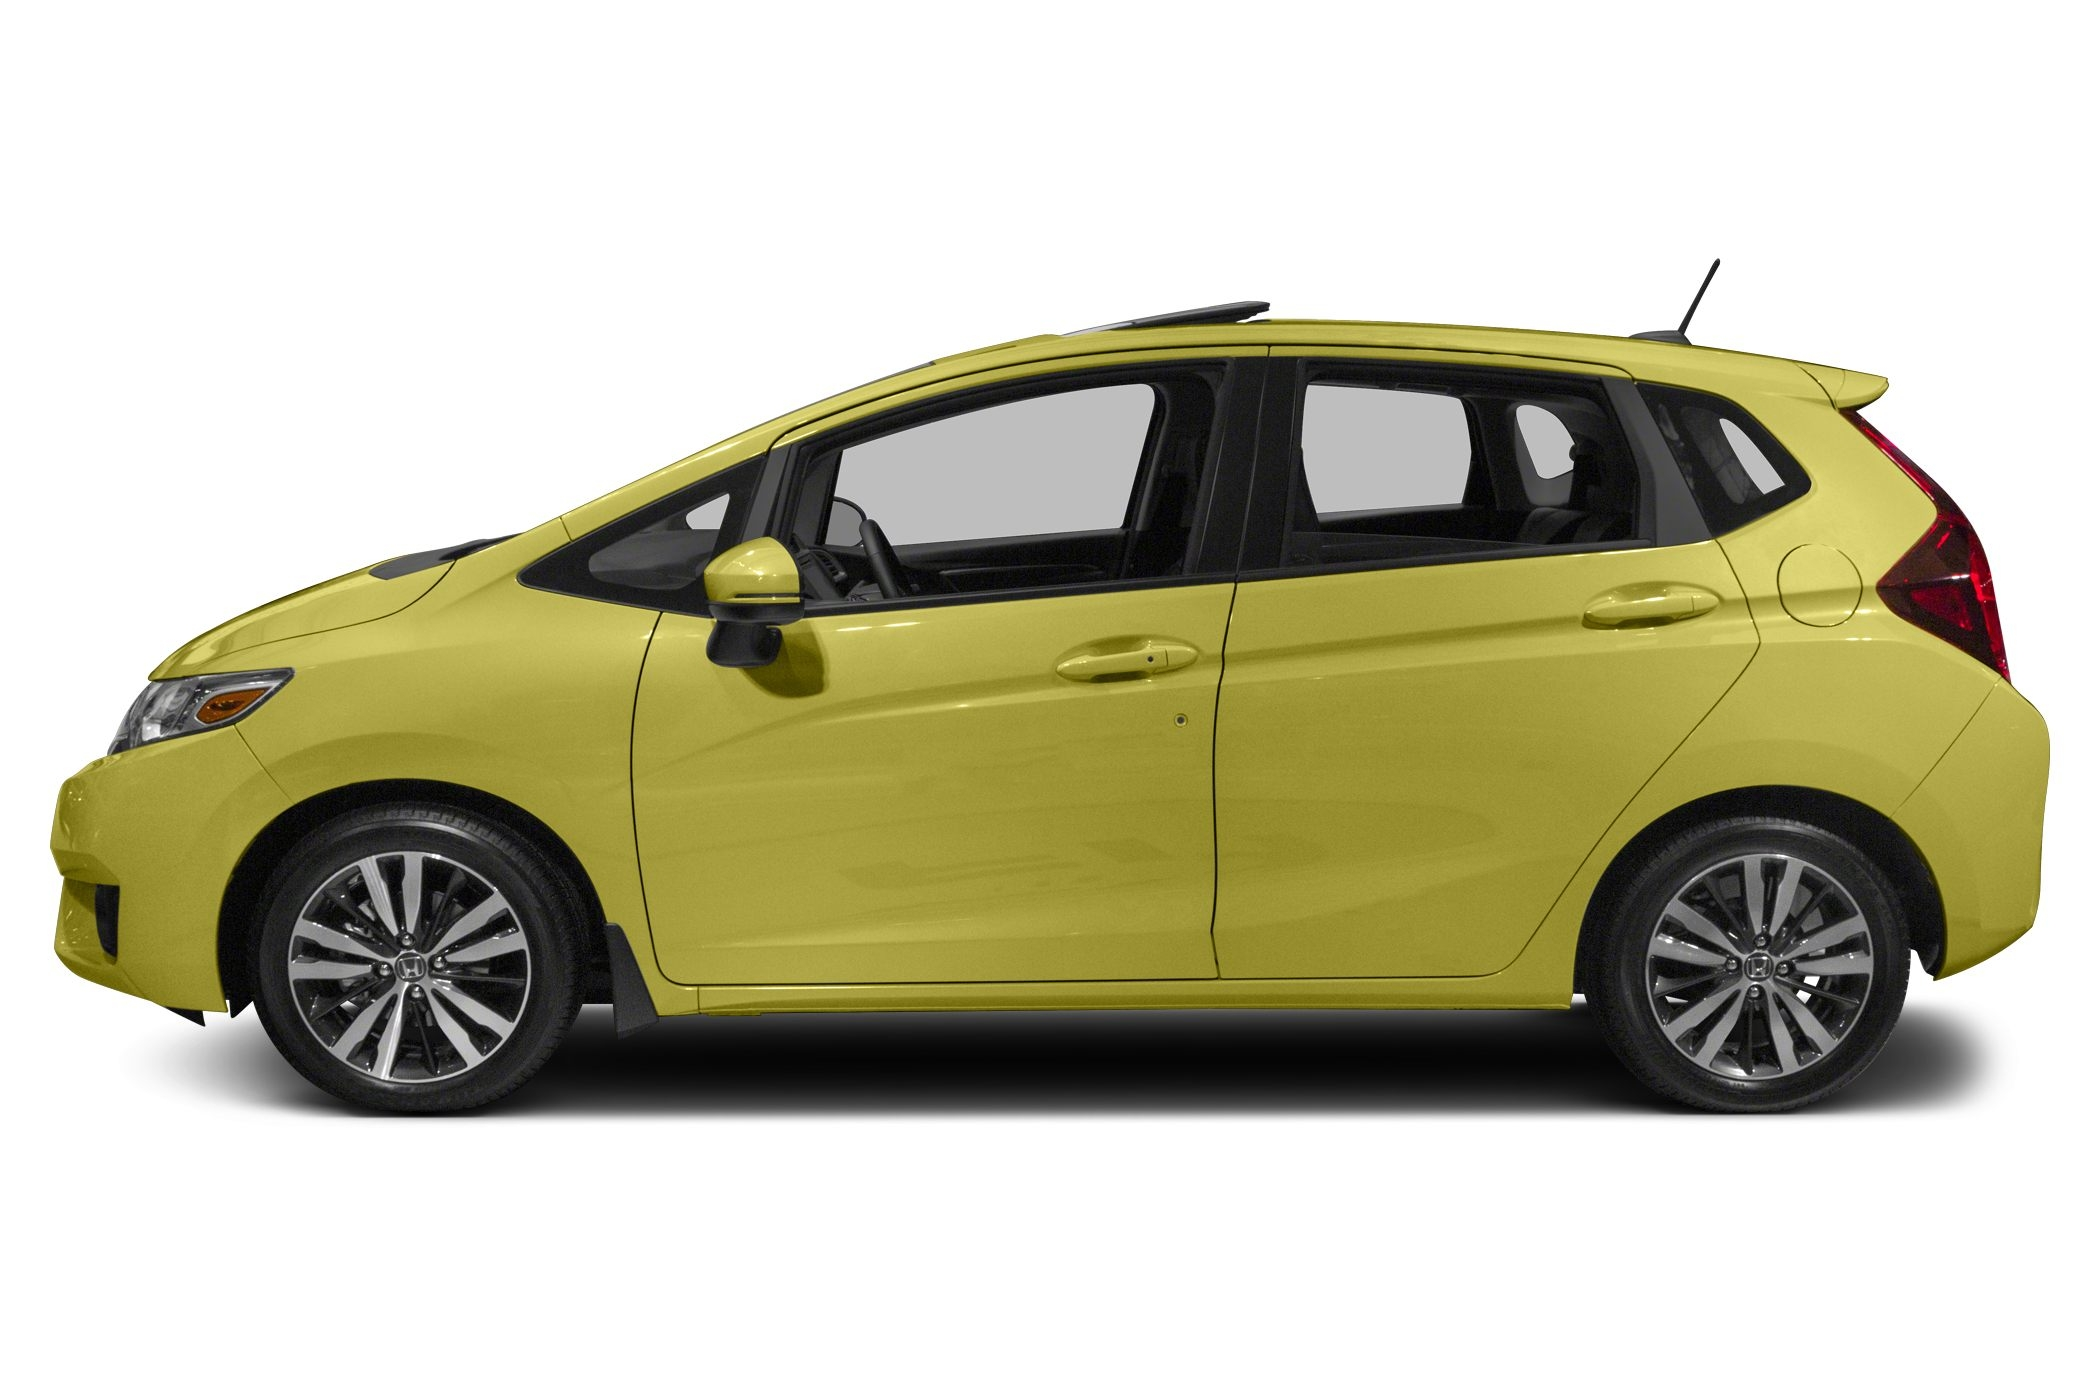 2015 honda fit price photos reviews amp features honda fit dealer invoice